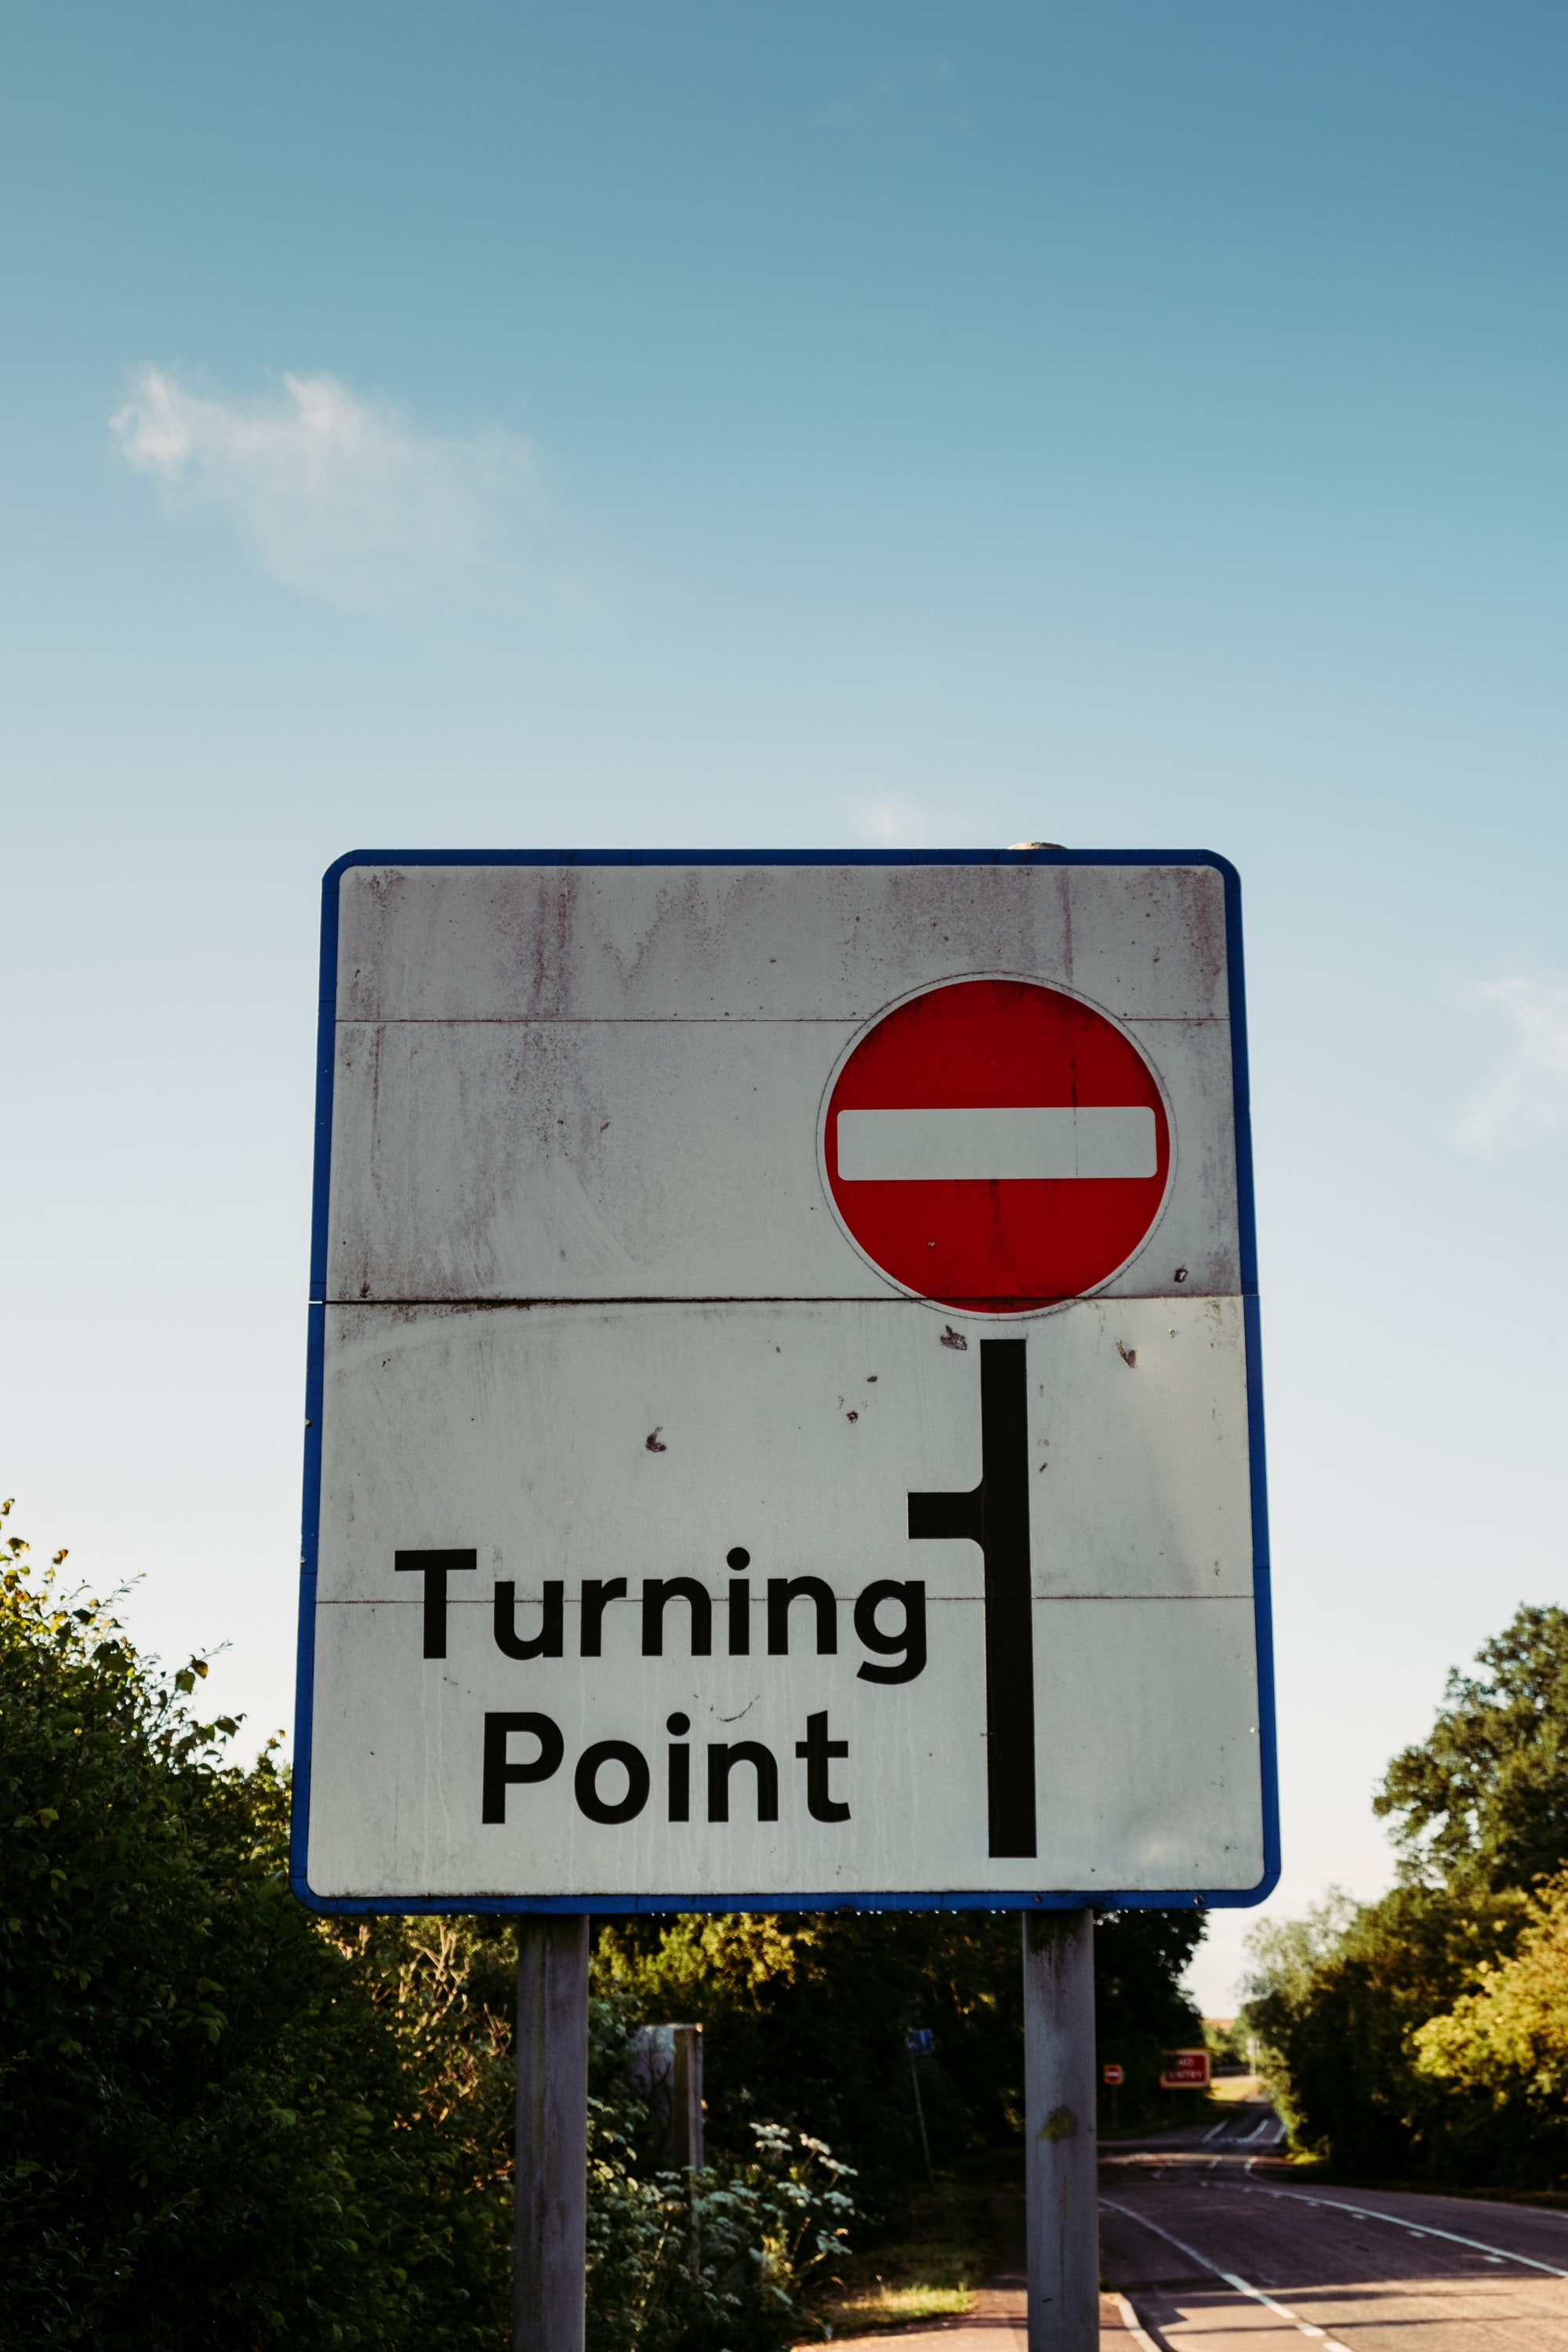 January 7 - At the Turning Point